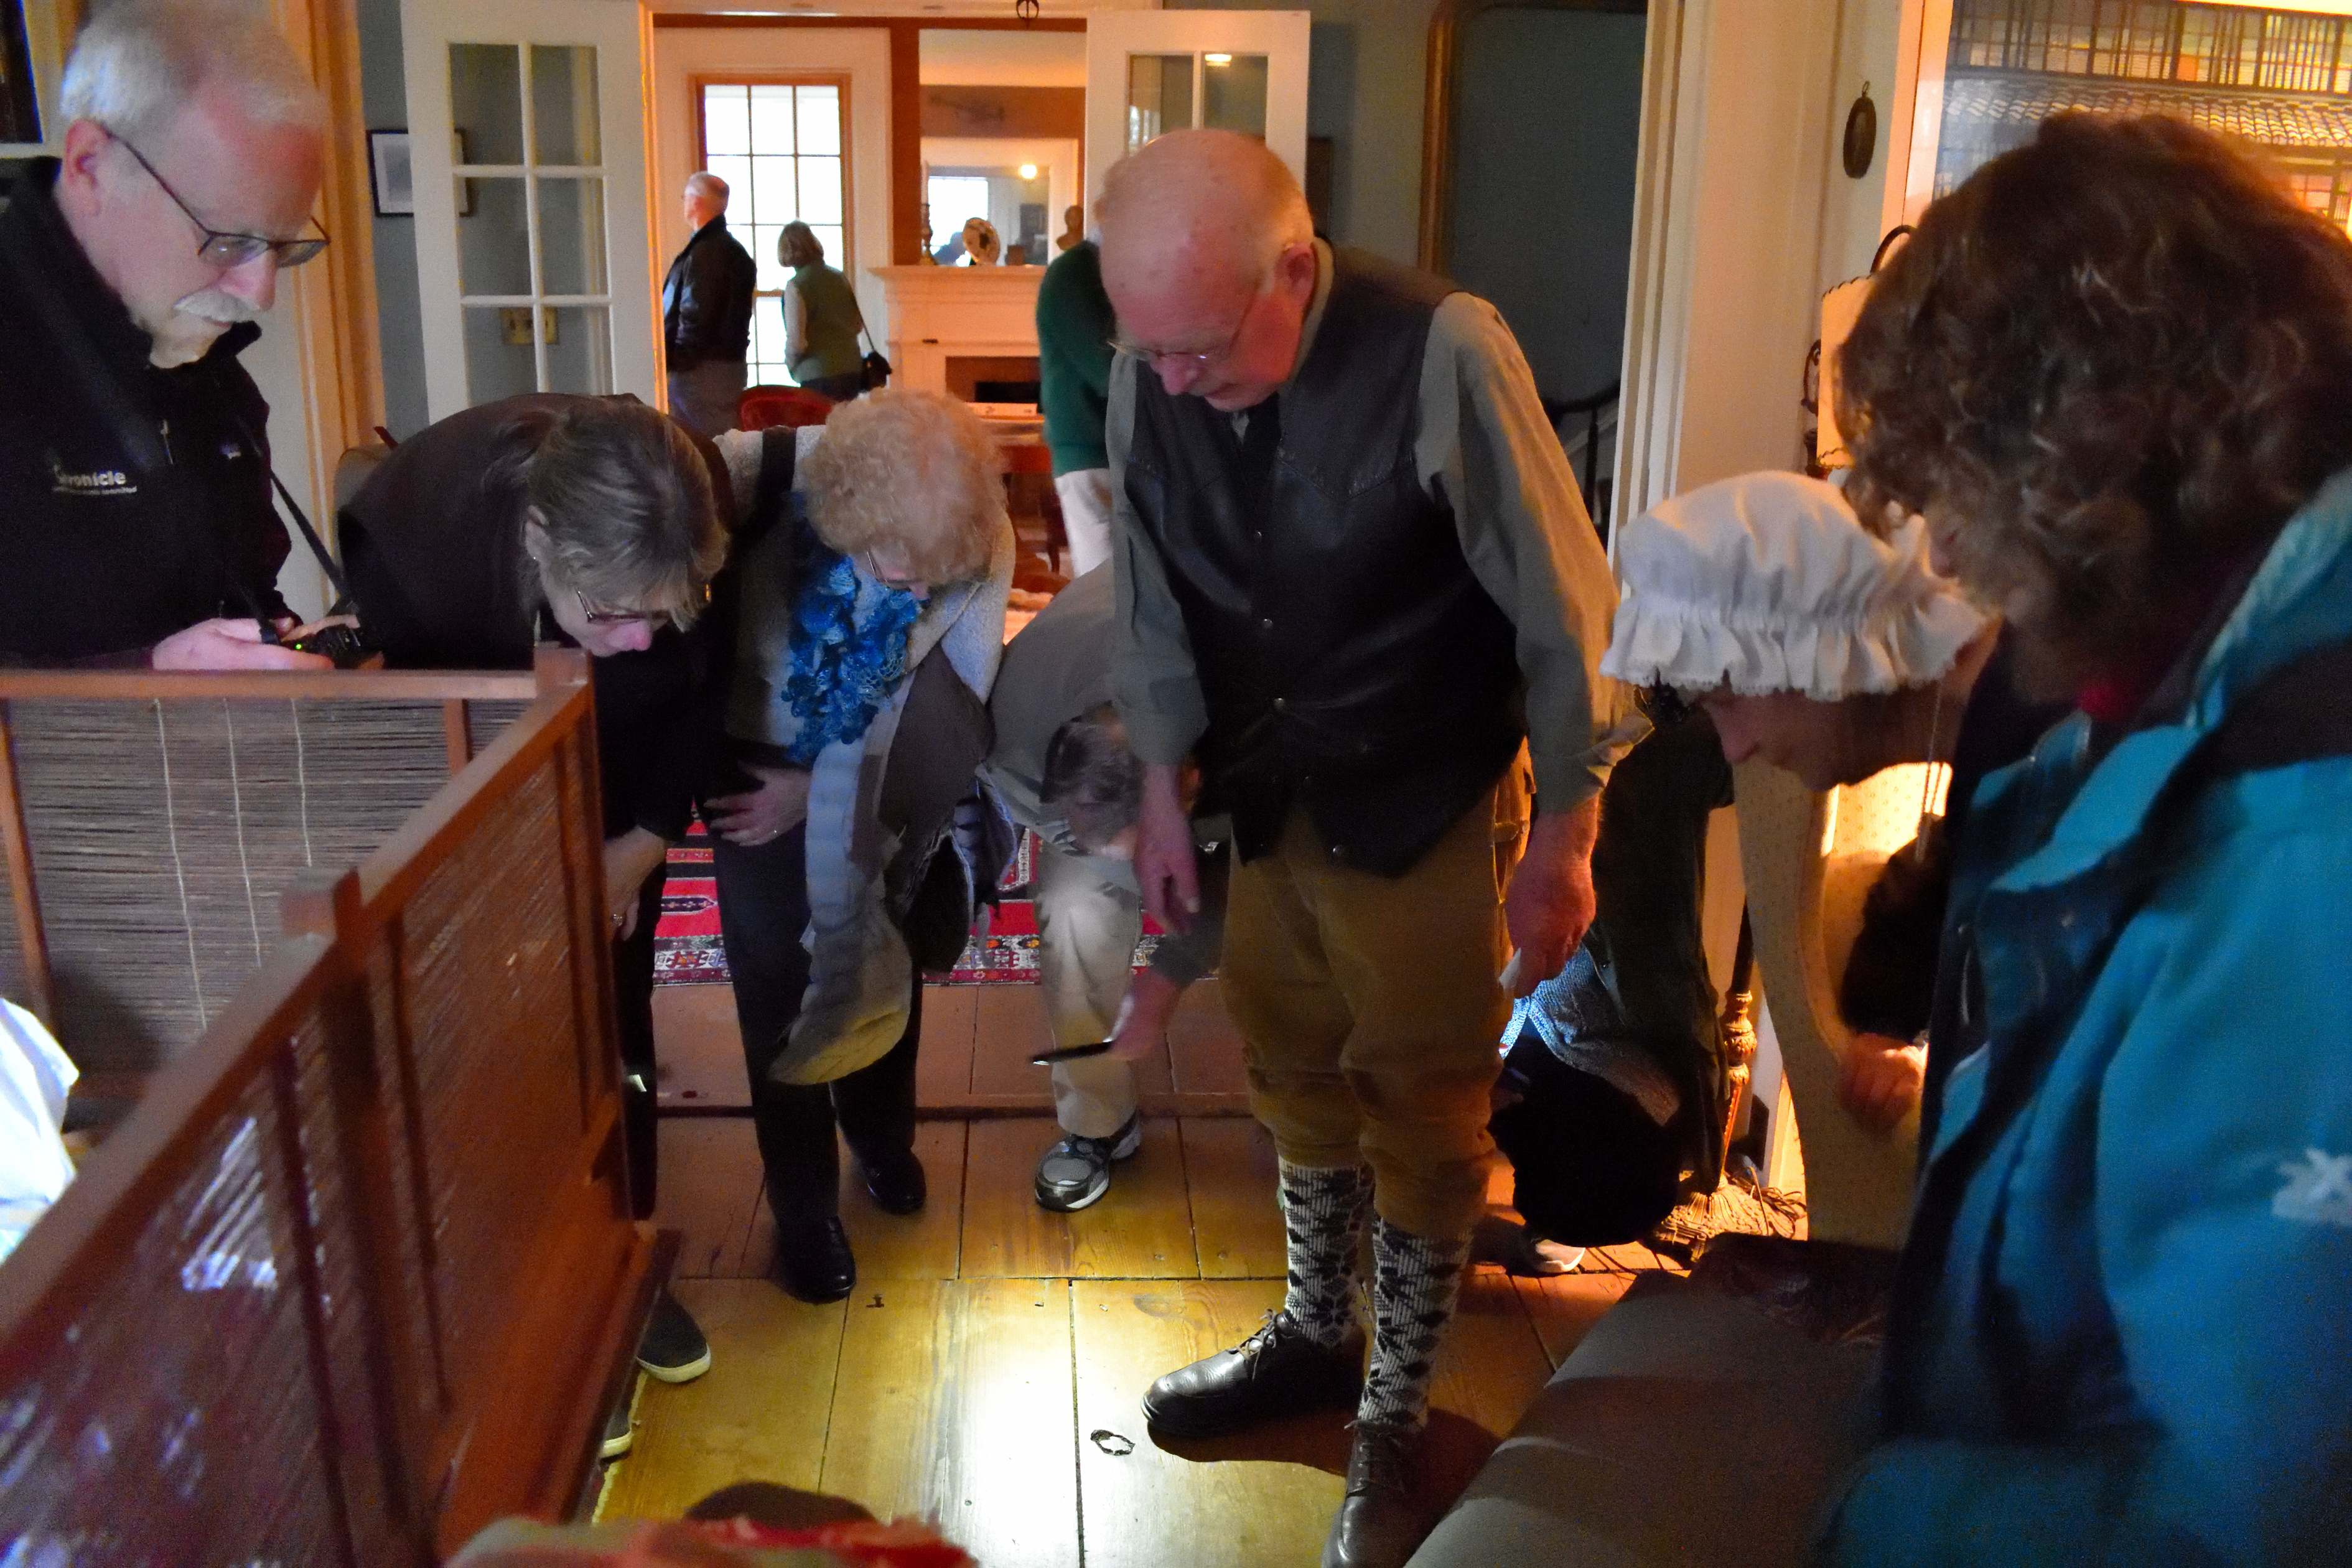 Owner David Bullard showing visitors the blood stains left by wounded soldiers when The Marshall House was used as a hospital during the retreat of the British forces following their defeat at the Battles of Saratoga.